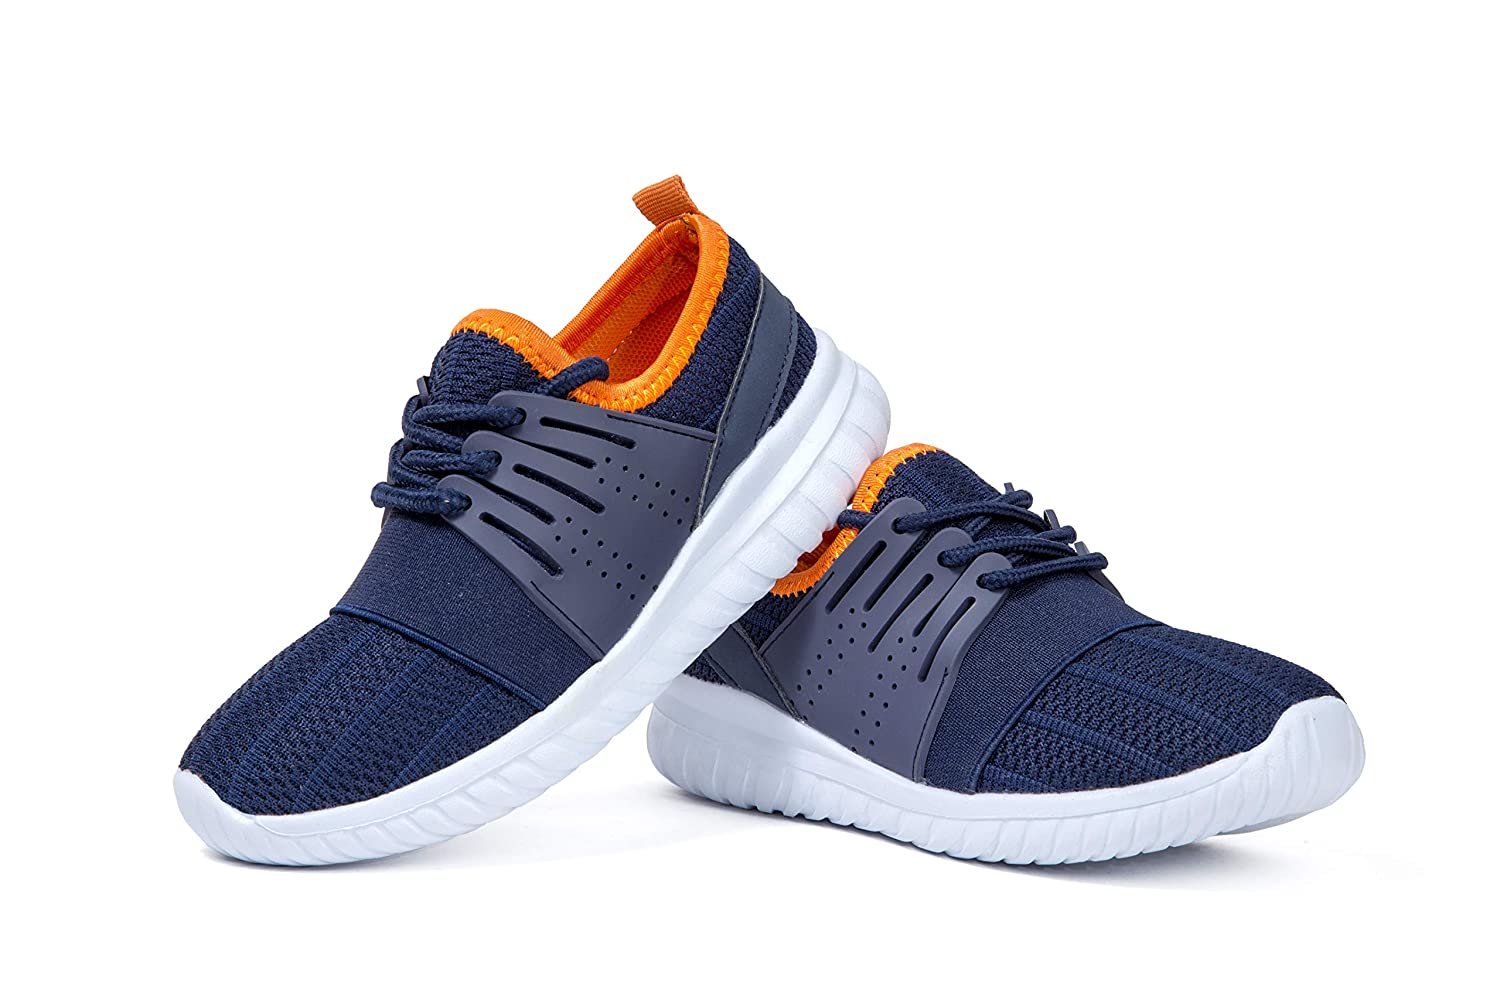 finest selection 28f76 946bd Amazon.com   Kids Athletic Tennis Shoes - Little Kid Sneakers with Girl and  Boy Sizes Blue Orange Size 10 Little Kid (Azul - 28) 10 M US   Sneakers